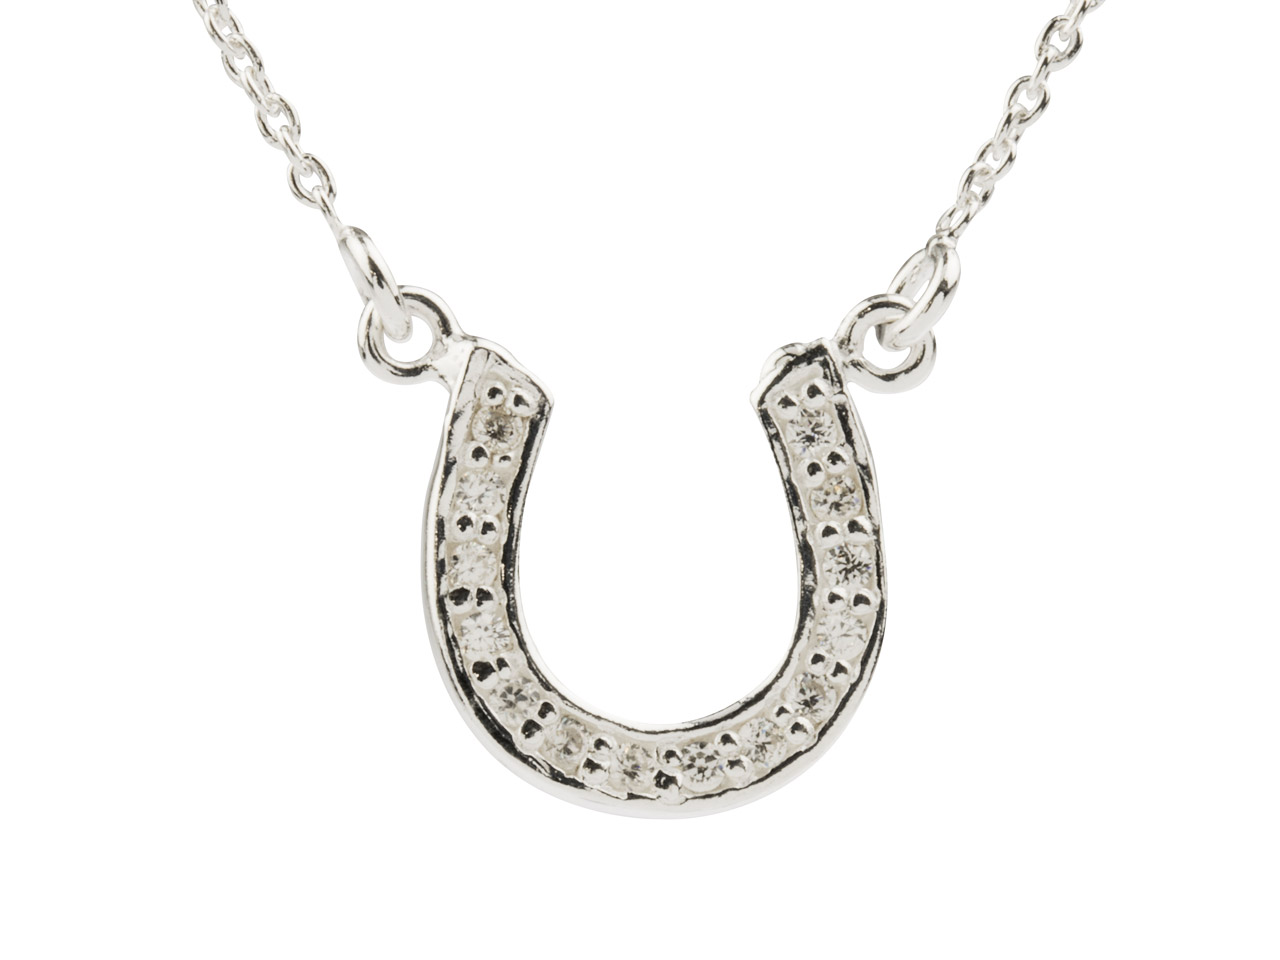 Sterling Silver Horseshoe Necklet  Set With Cz, 16-18